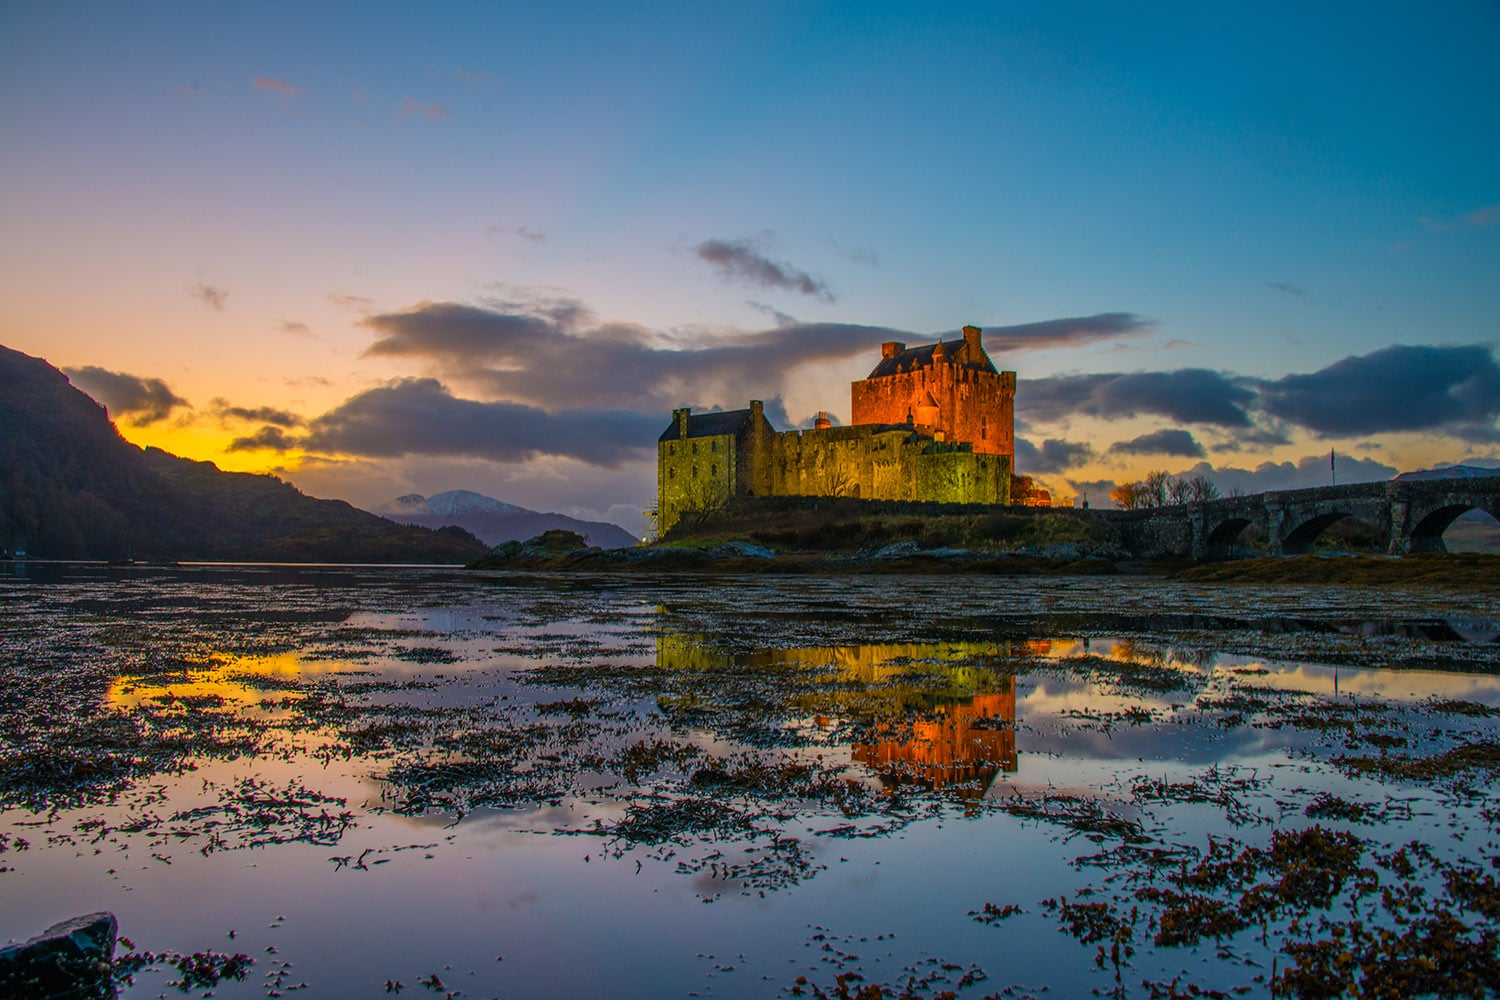 A lovely view of Eilean Donan Castle at sunset, featured in our private tours of Scotland